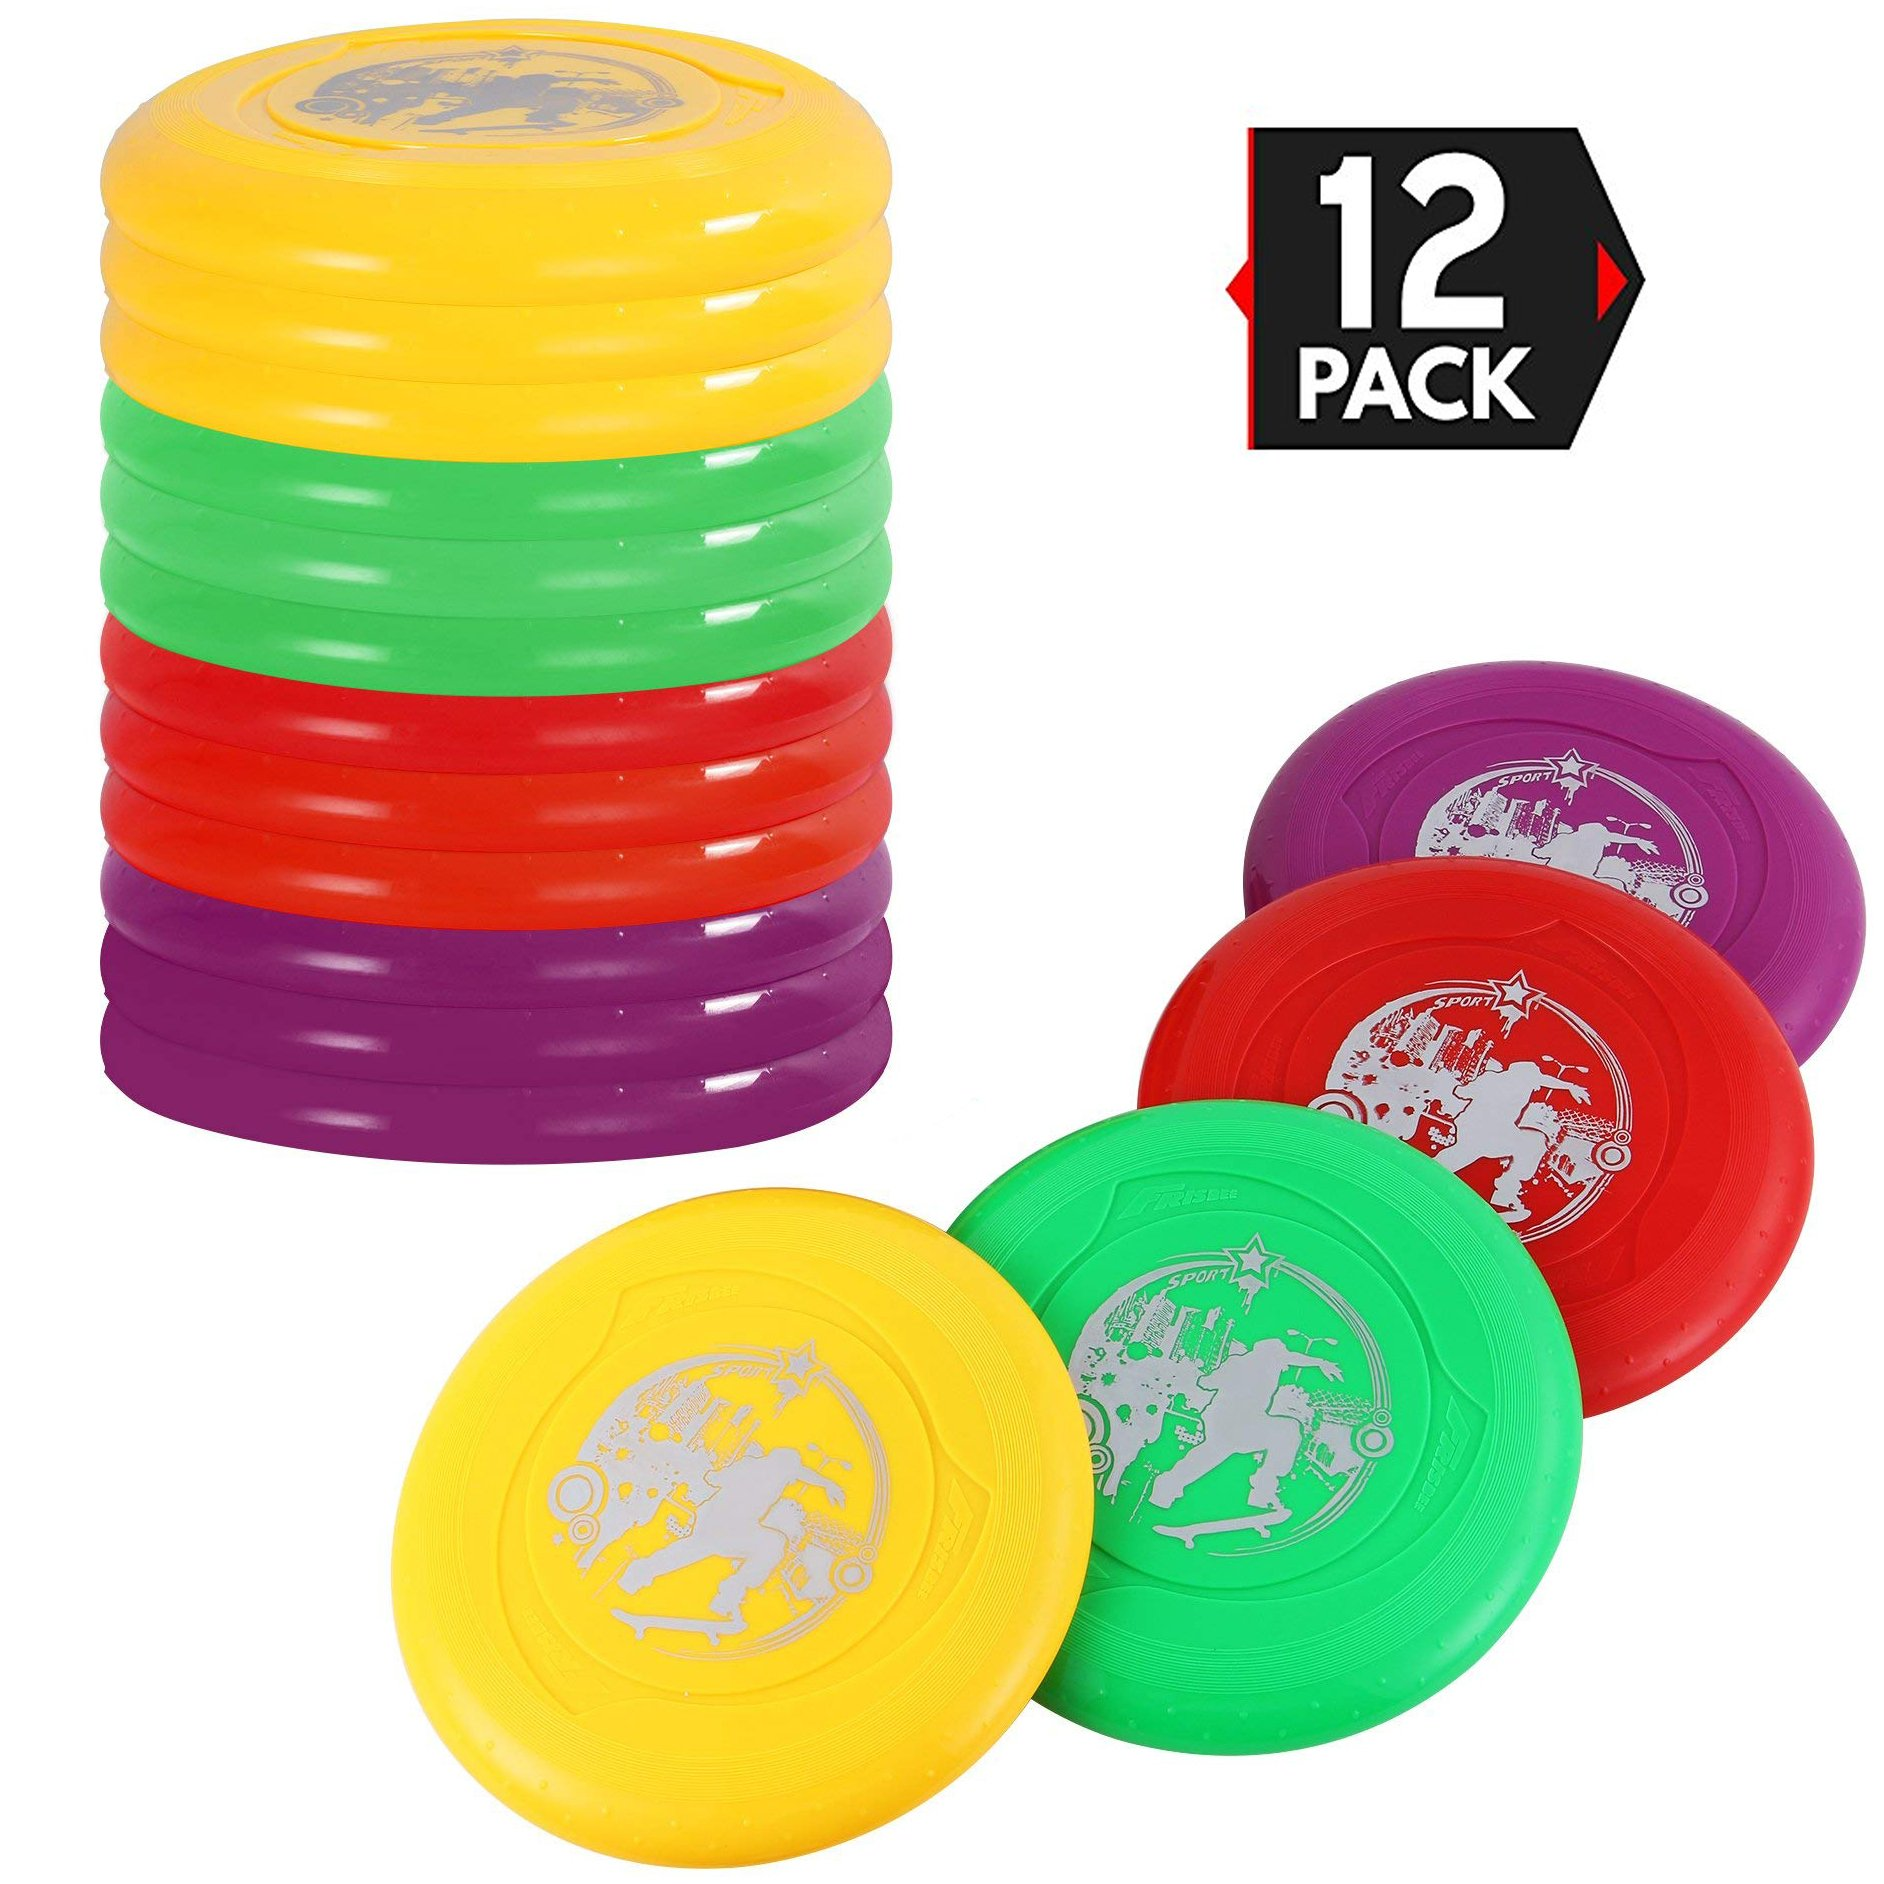 Liberty Imports Plastic Flying Disk Set for Outdoors Beach Backyard Sports Play Discs (Pack of 12) by Liberty Imports